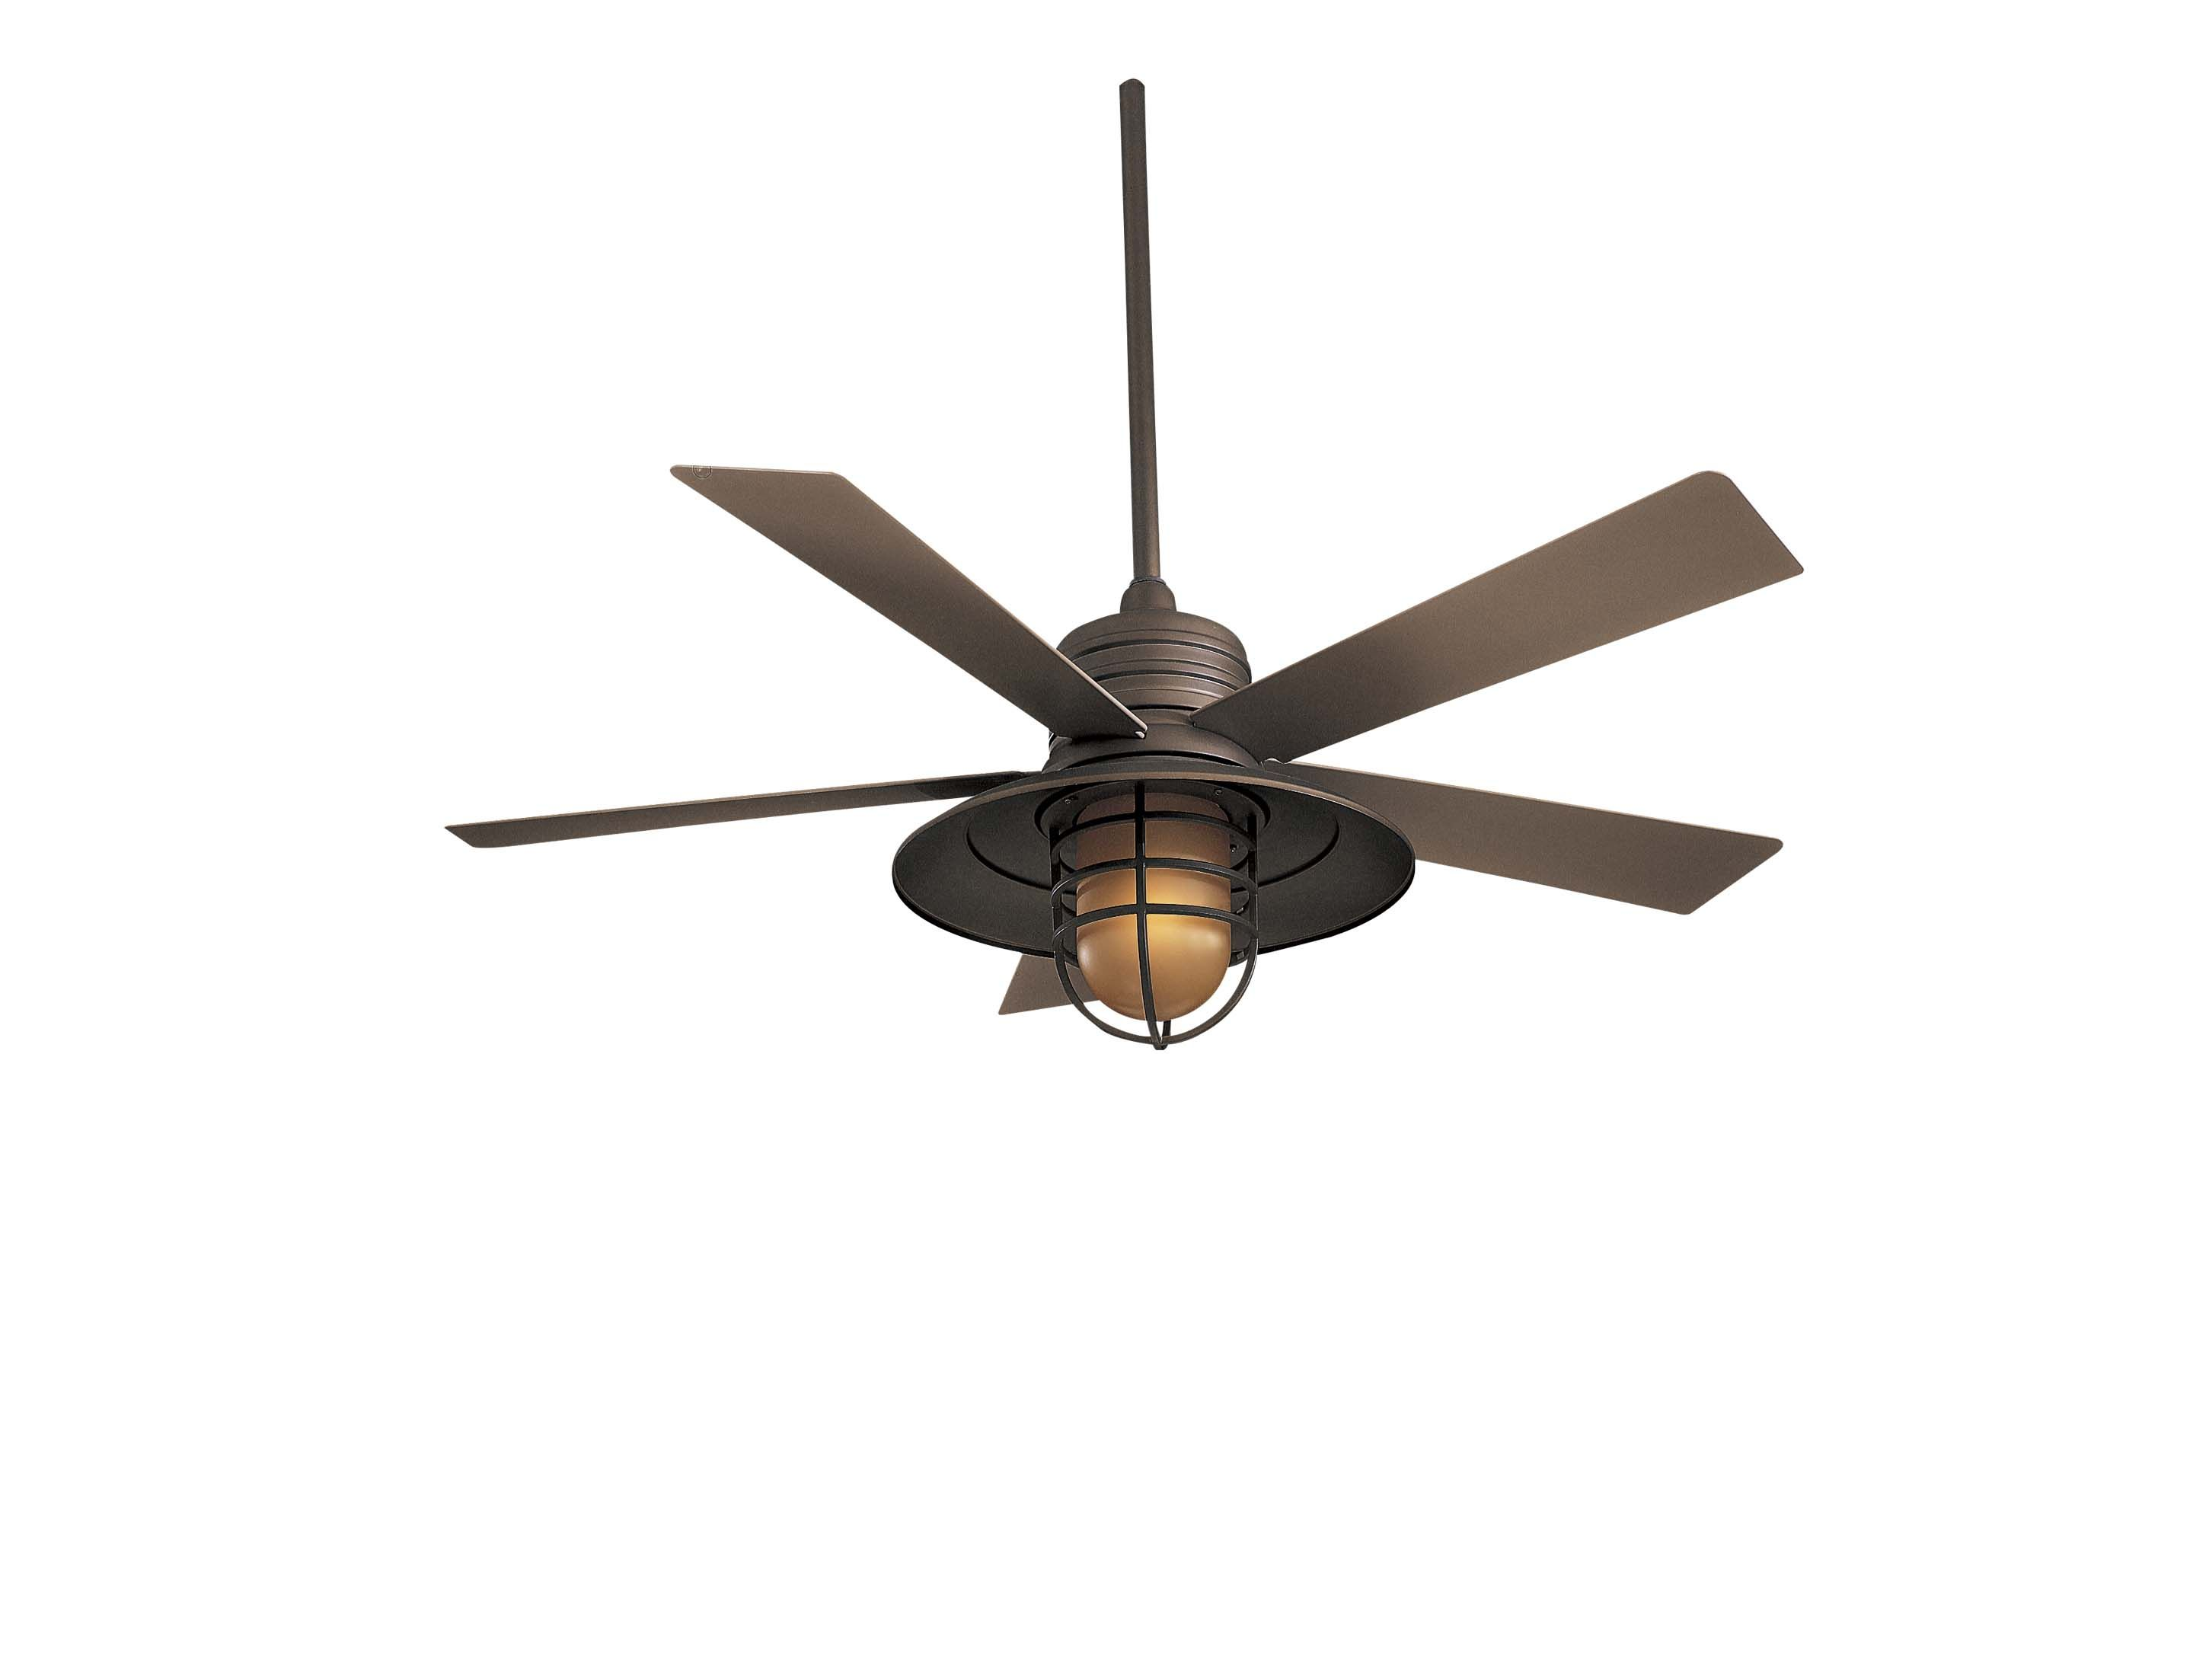 Rainman Indoor Outdoor Ceiling Fan With Light By Minka Aire F582l Bnw Antique Ceiling Fans Outdoor Ceiling Fans Ceiling Fan